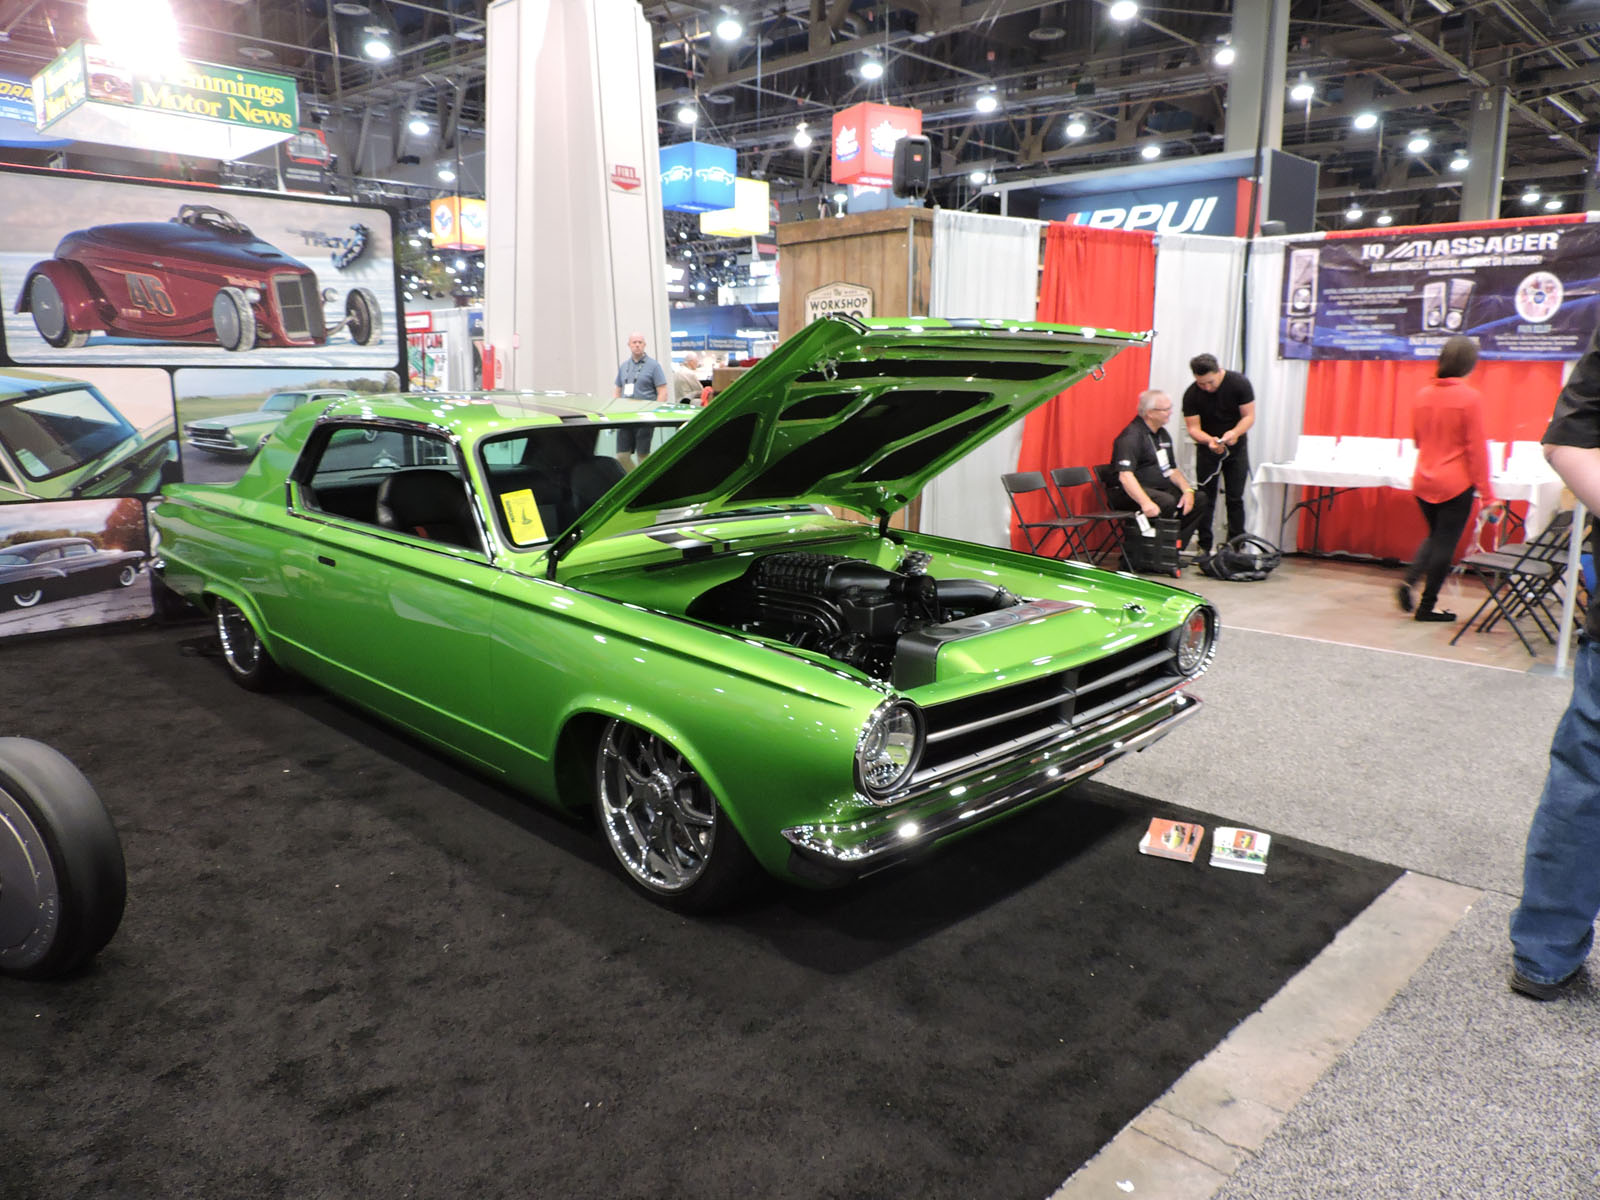 Best Cars 2015 Top 10 List Of Cool Cars: Top 10 Classic Muscle Cars Of SEMA 2015 » AutoGuide.com News